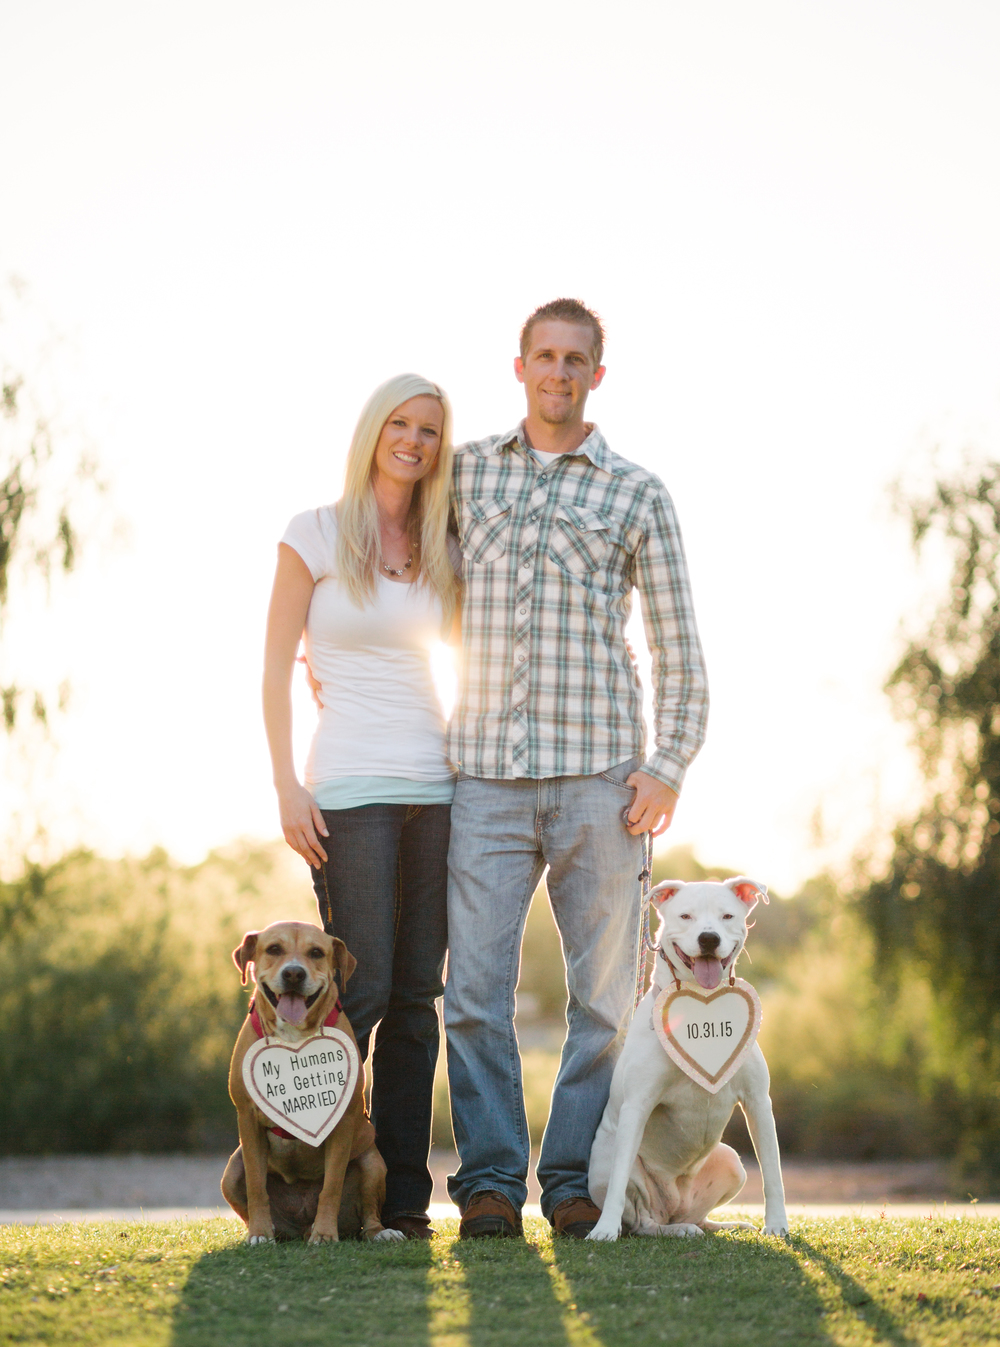 Couple Engagement Shoot with Dogs